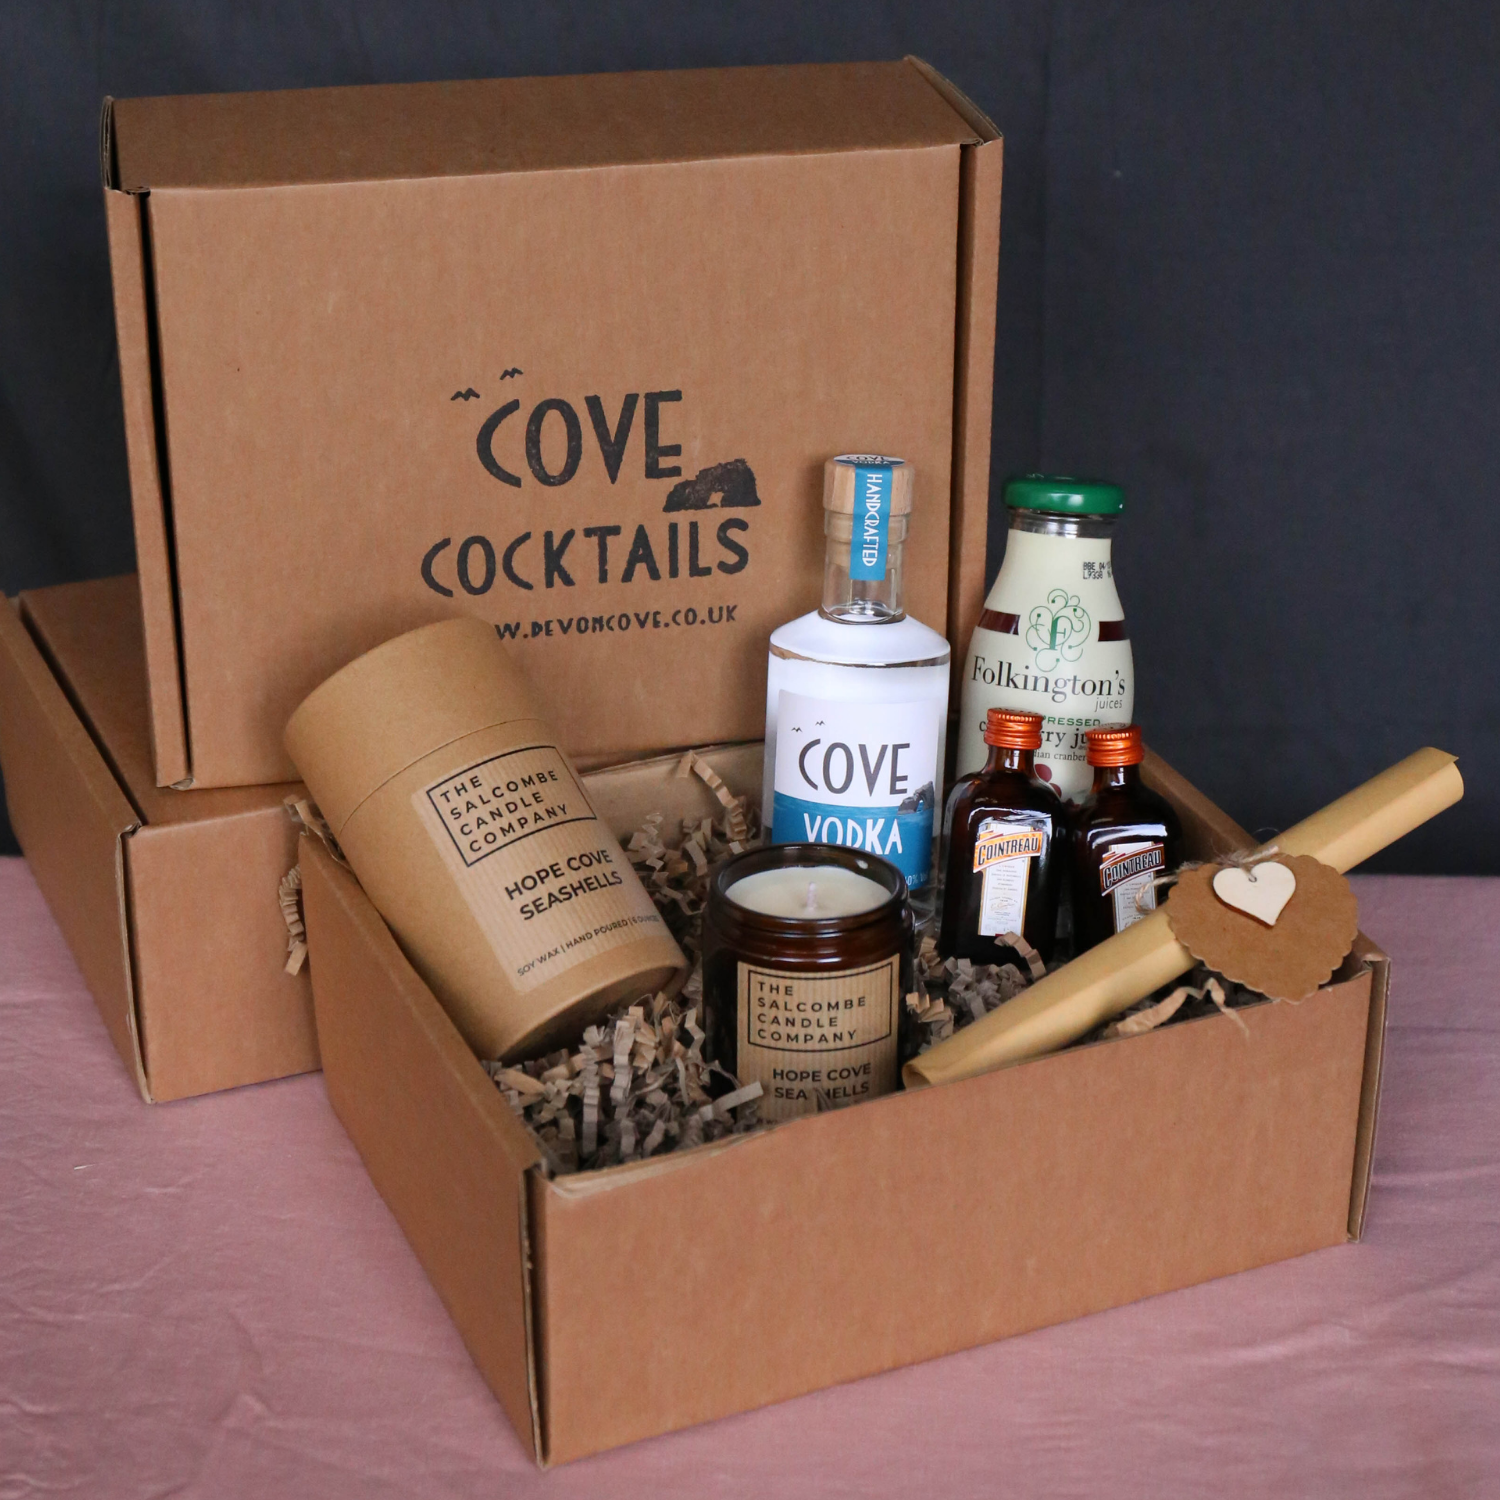 Cosmopolitan Cocktail Kit and candle gift box